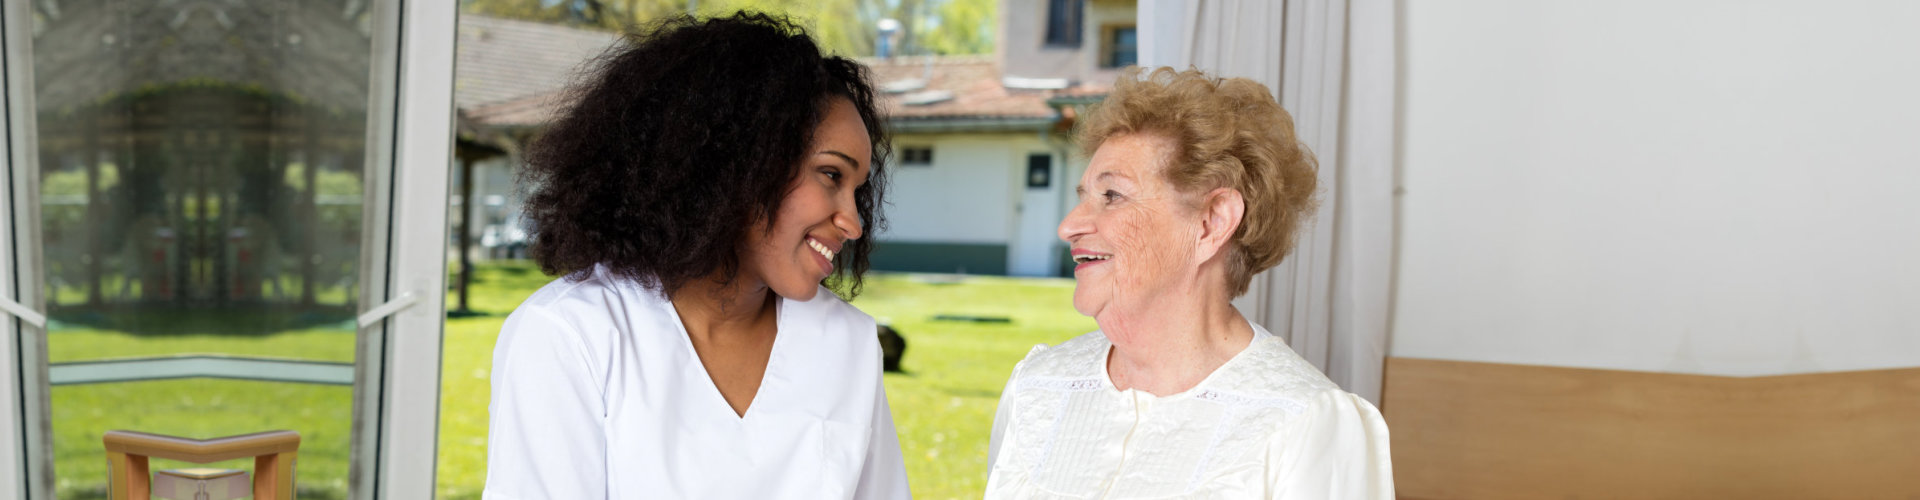 caregiver looking at the senior woman whie smiling